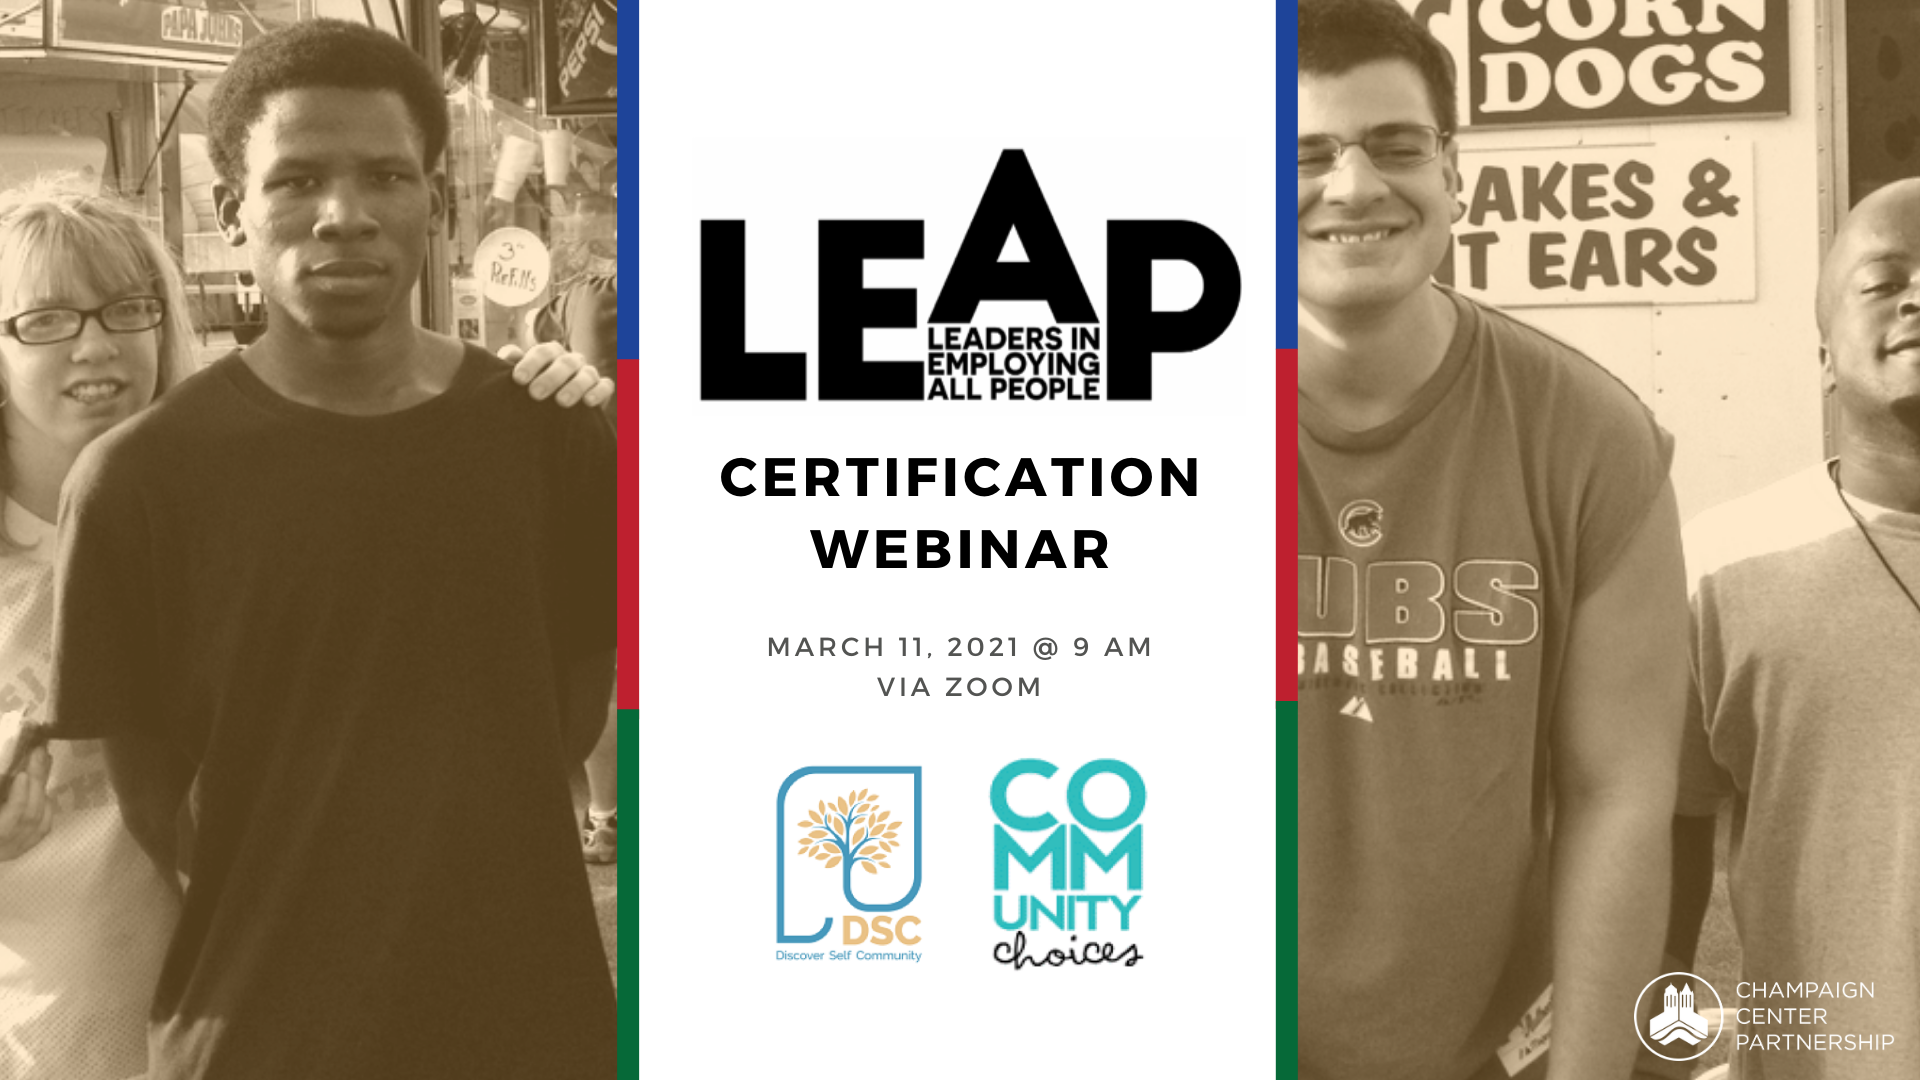 certification leap employing leaders